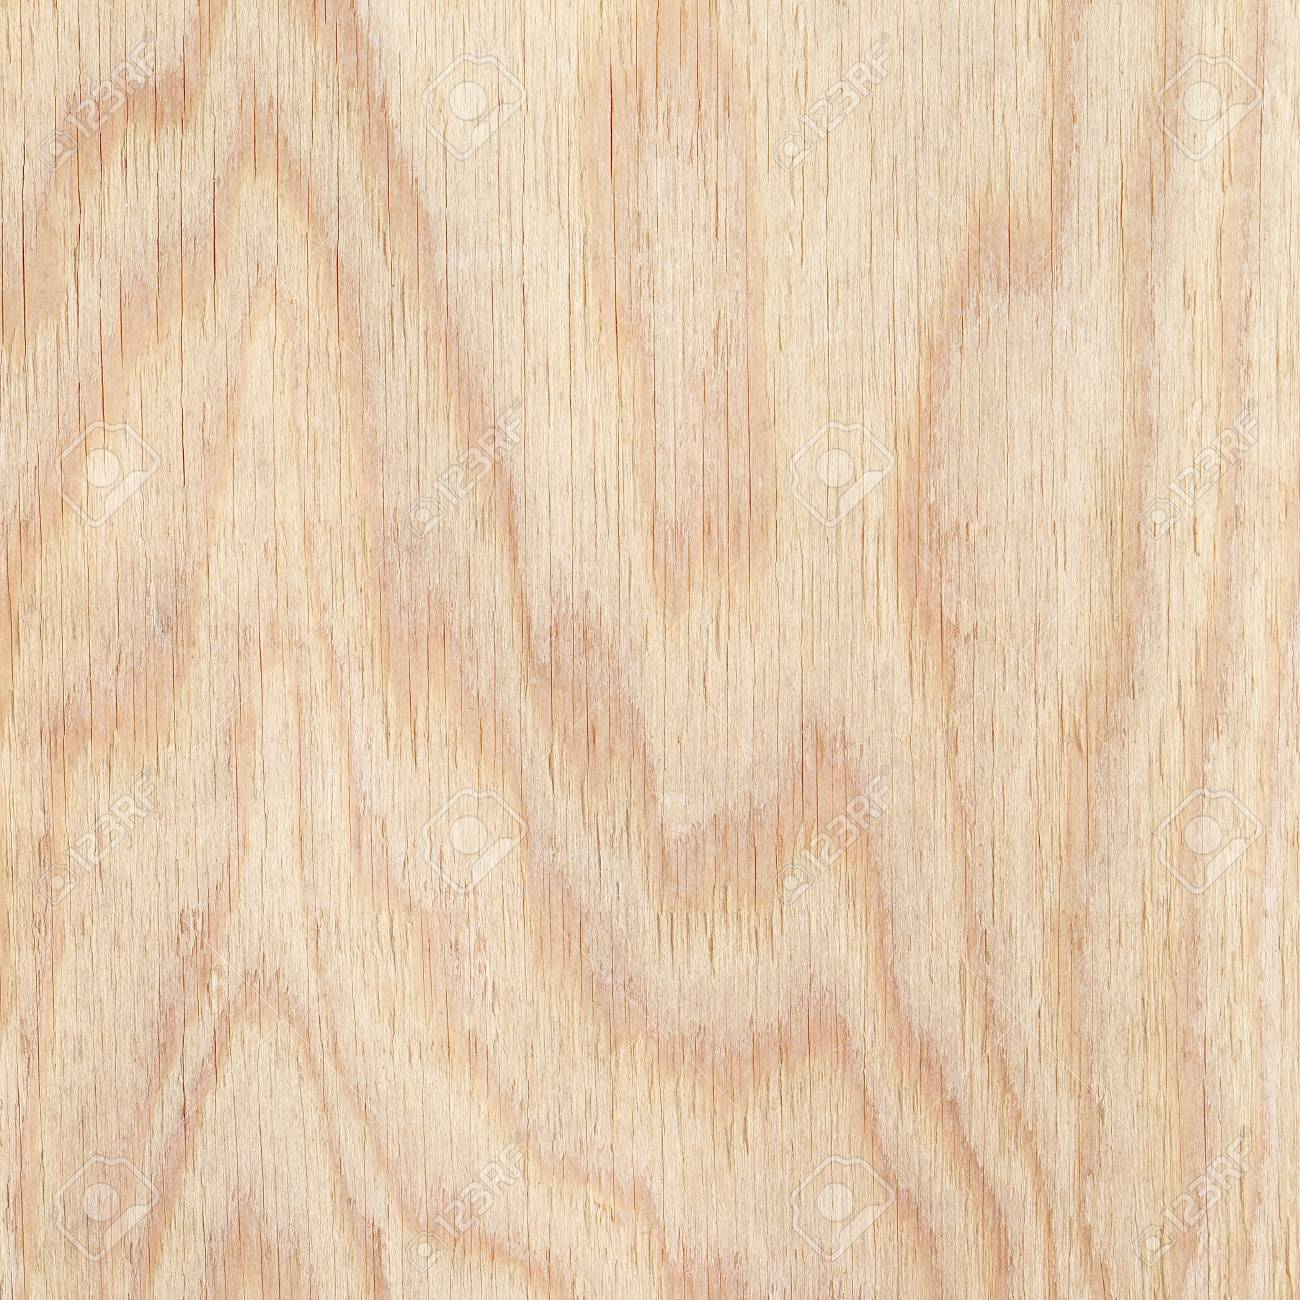 Plywood Texture With Natural Wood Pattern Wood Grain Wood